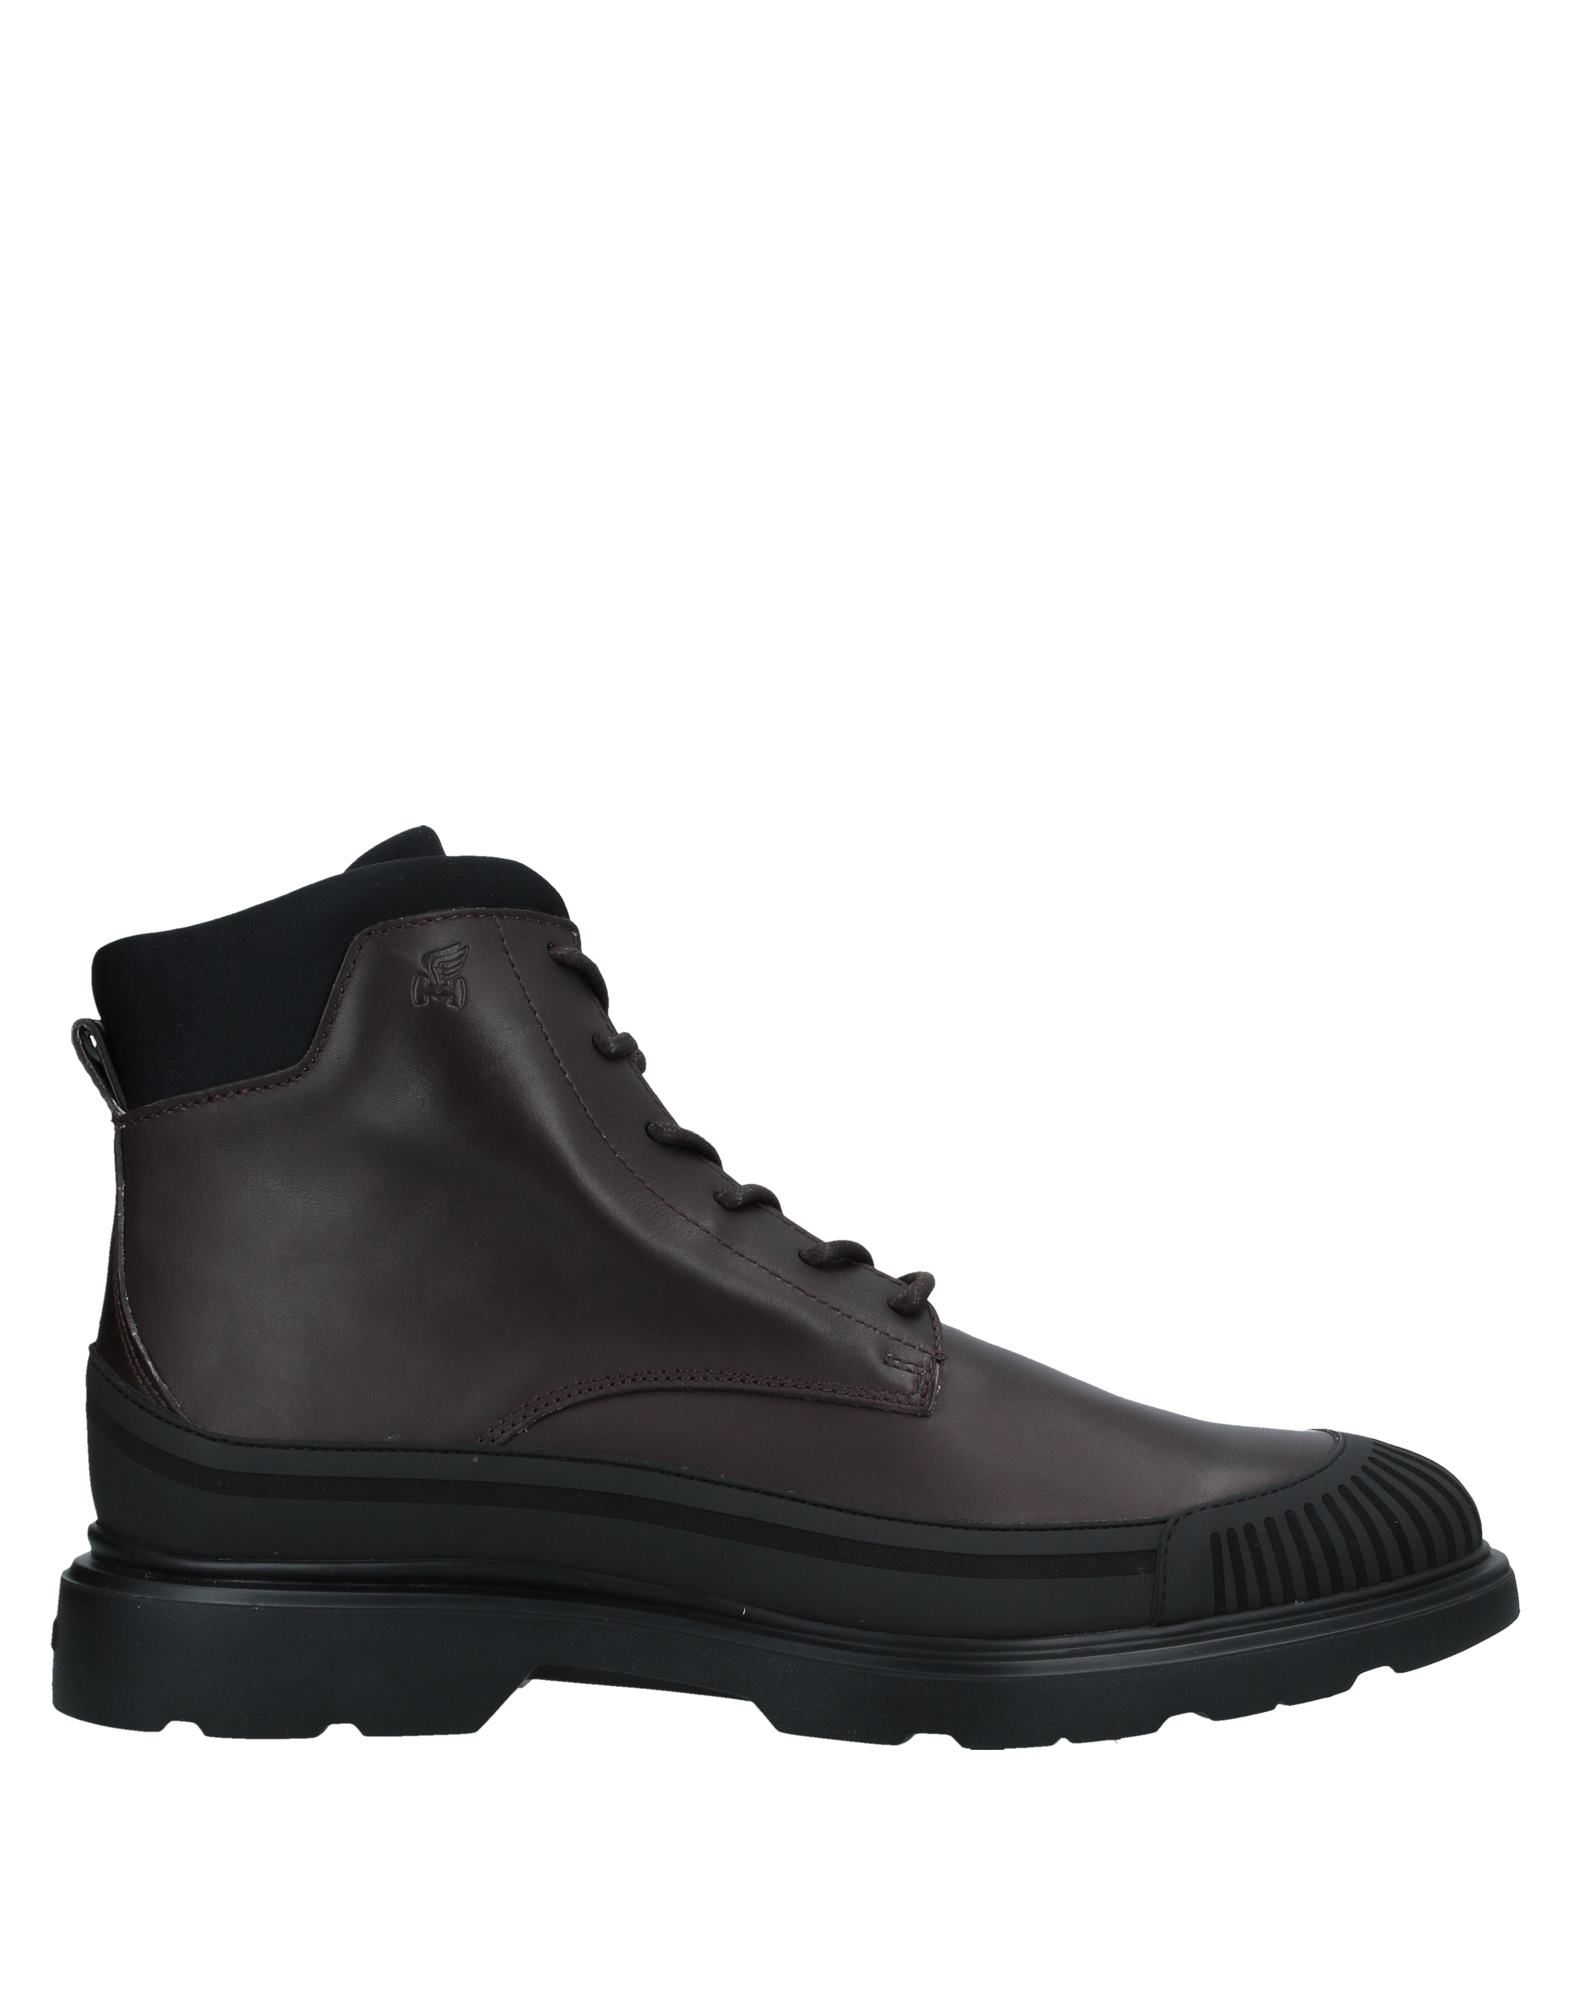 HOGAN Ankle boots. leather, logo, two-tone, laces, round toeline, square heel, fully lined, rubber cleated sole, contains non-textile parts of animal origin, large sized. Soft Leather